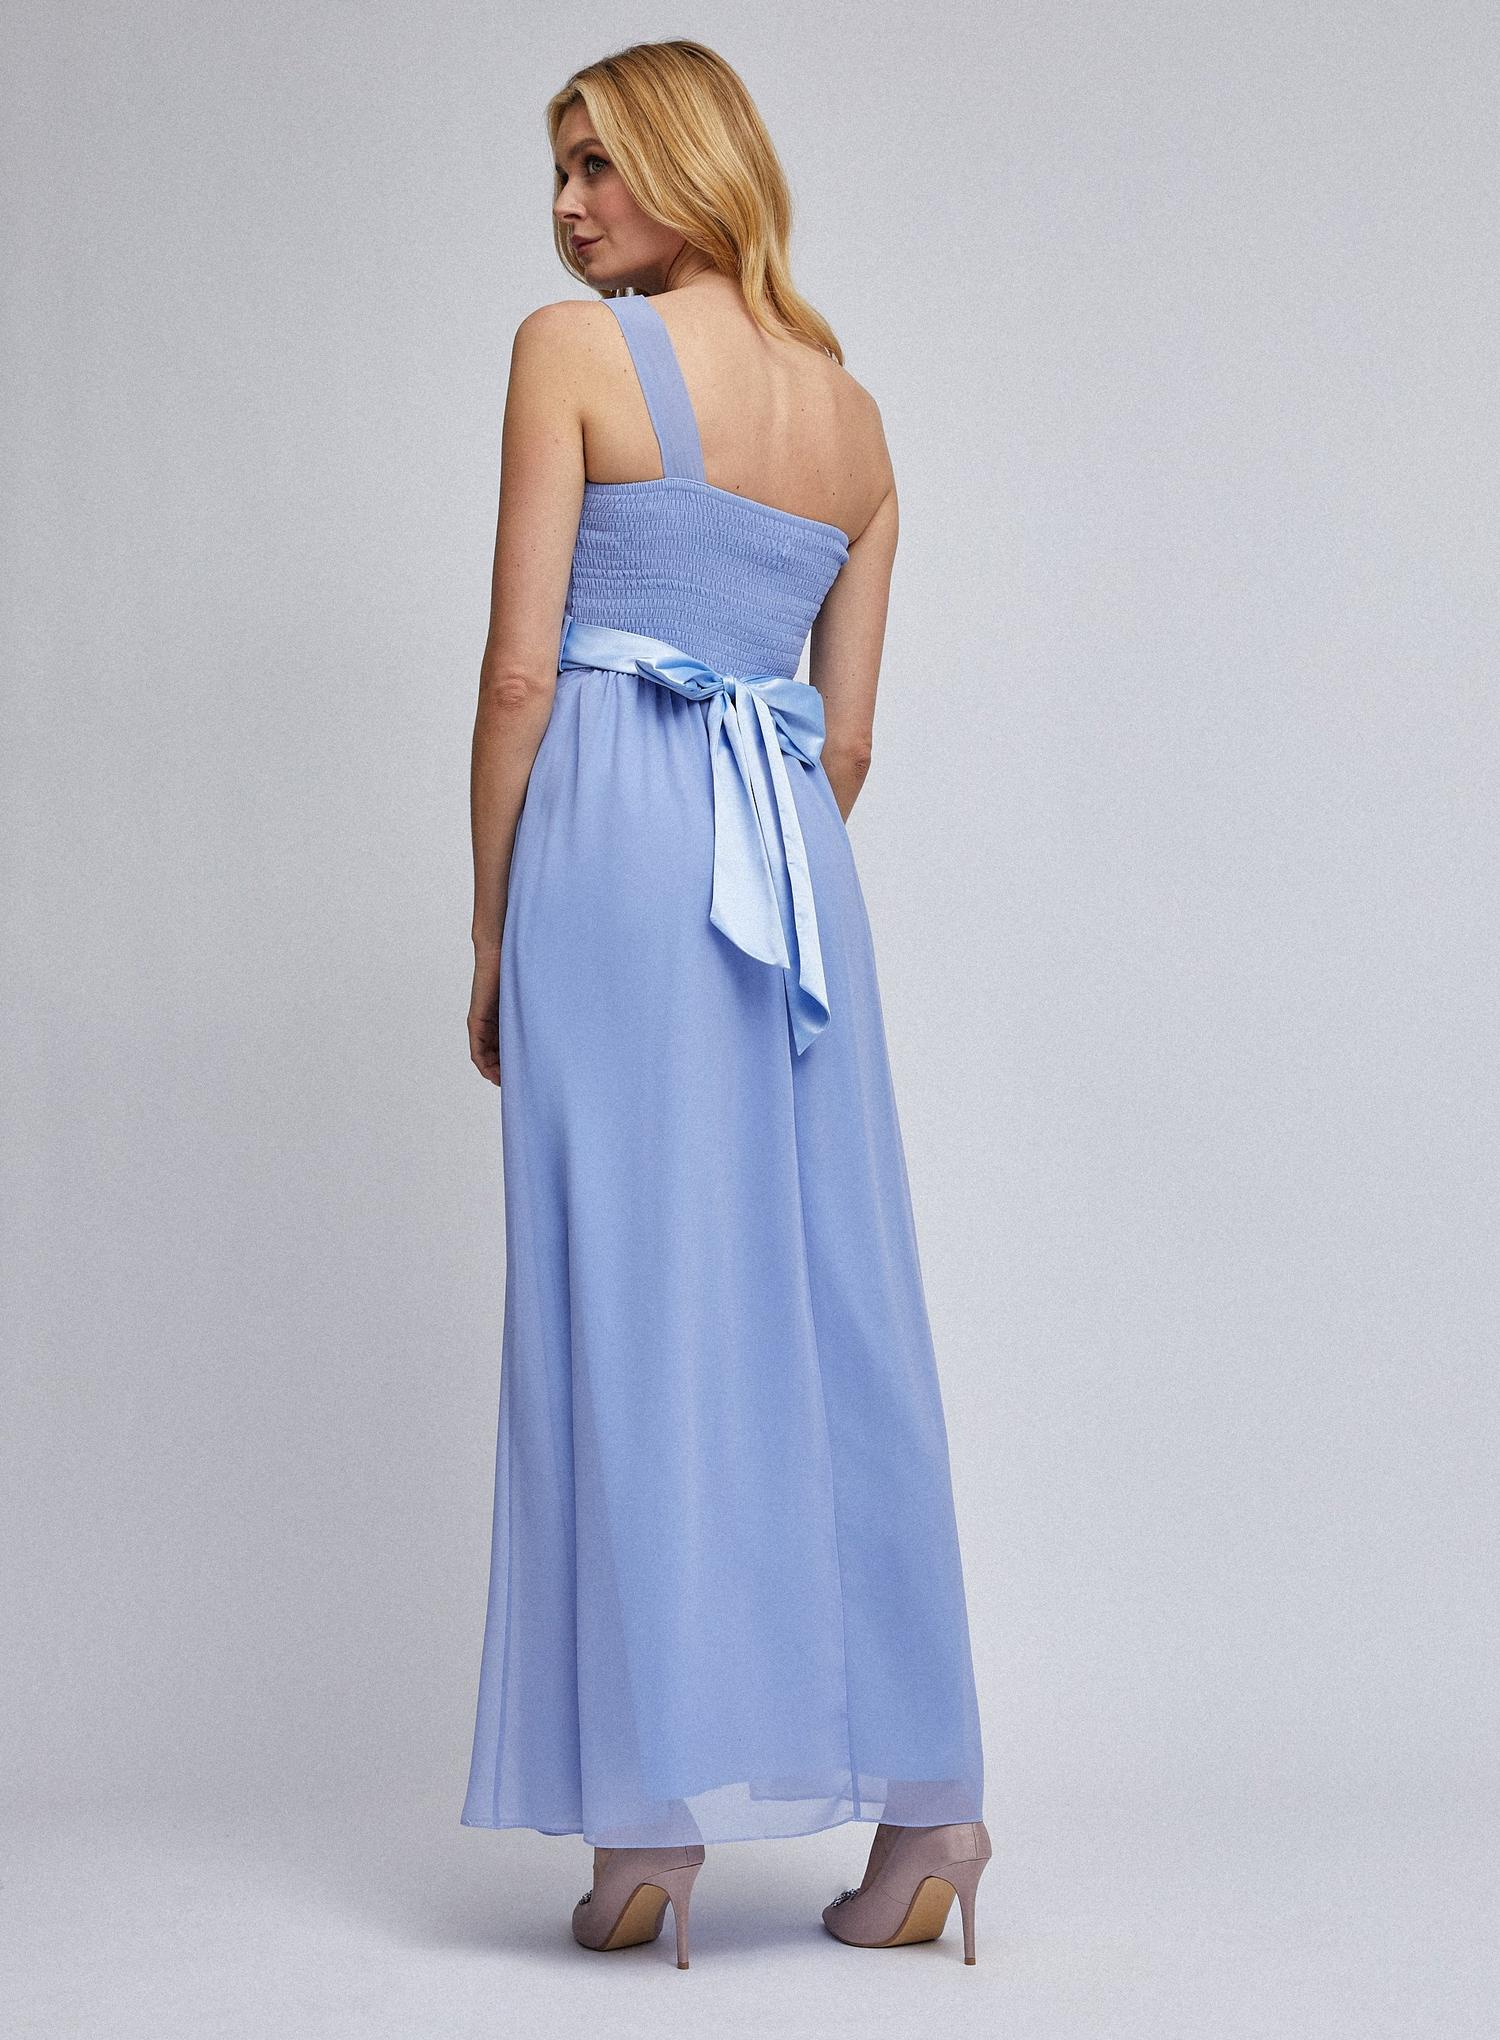 106 Sadie  Blue One Shoulder Maxi Dress image number 2